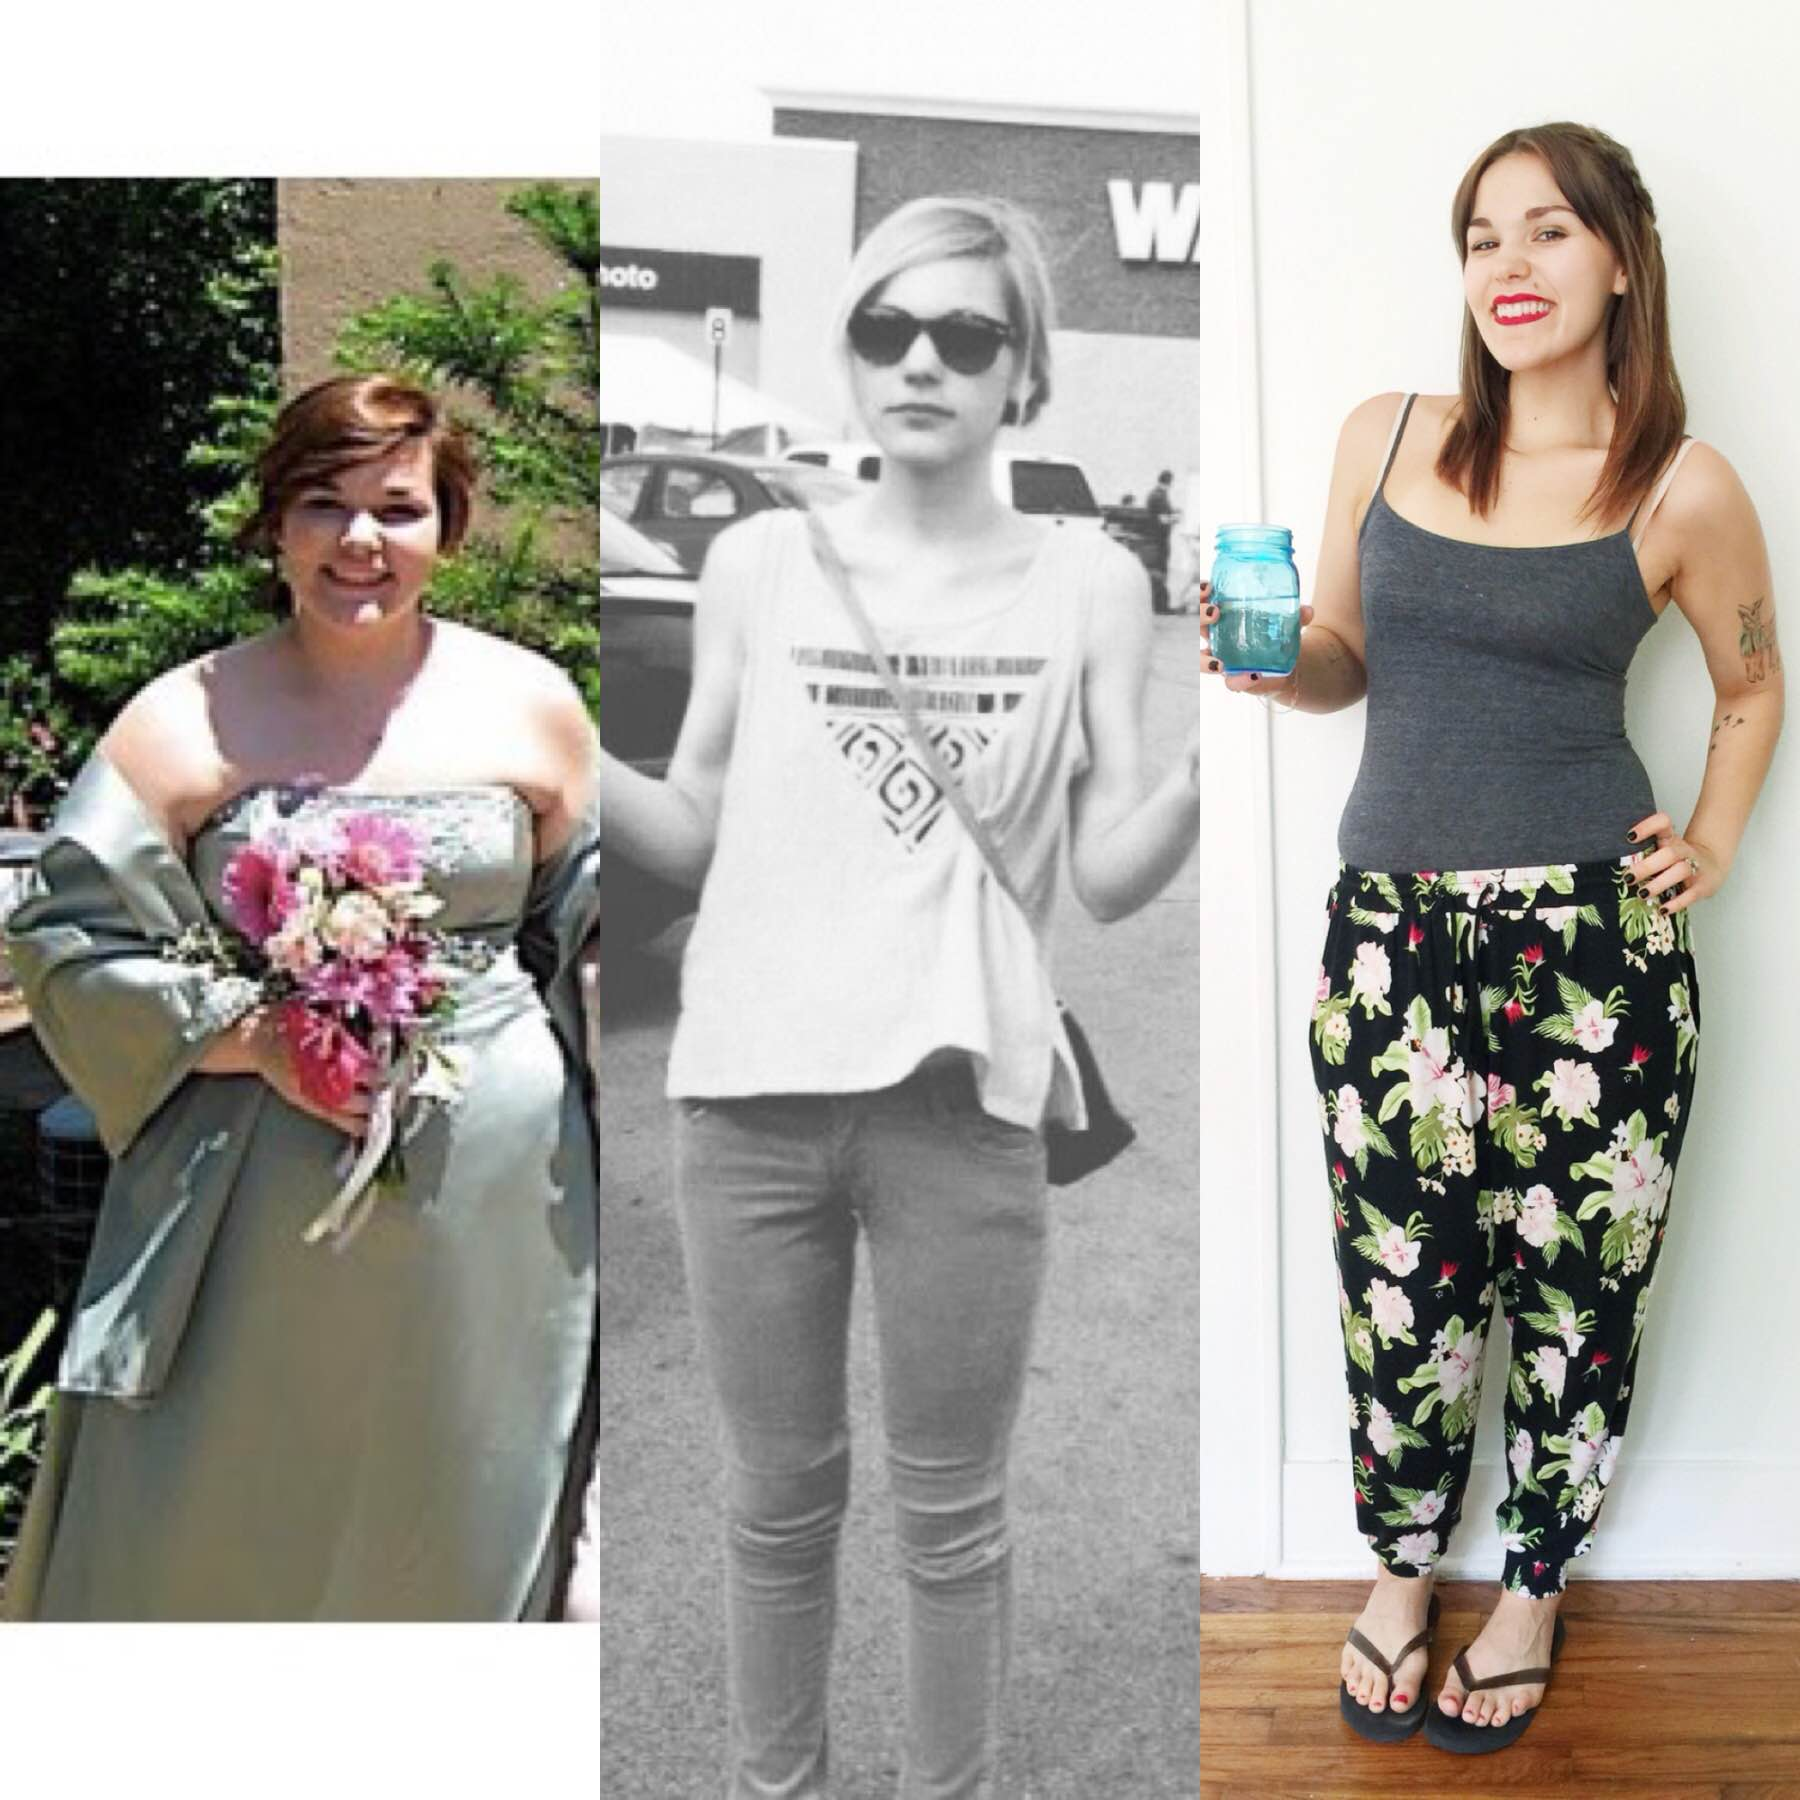 Left to right: 2009, I was fifteen and one of my heaviest weights (260ish?); middle, I was eighteen and my lowest weight (100ish); right, today cleaning the house with my husband. Twenty-one and who gives a f*ck how much I weigh?! I DON'T!